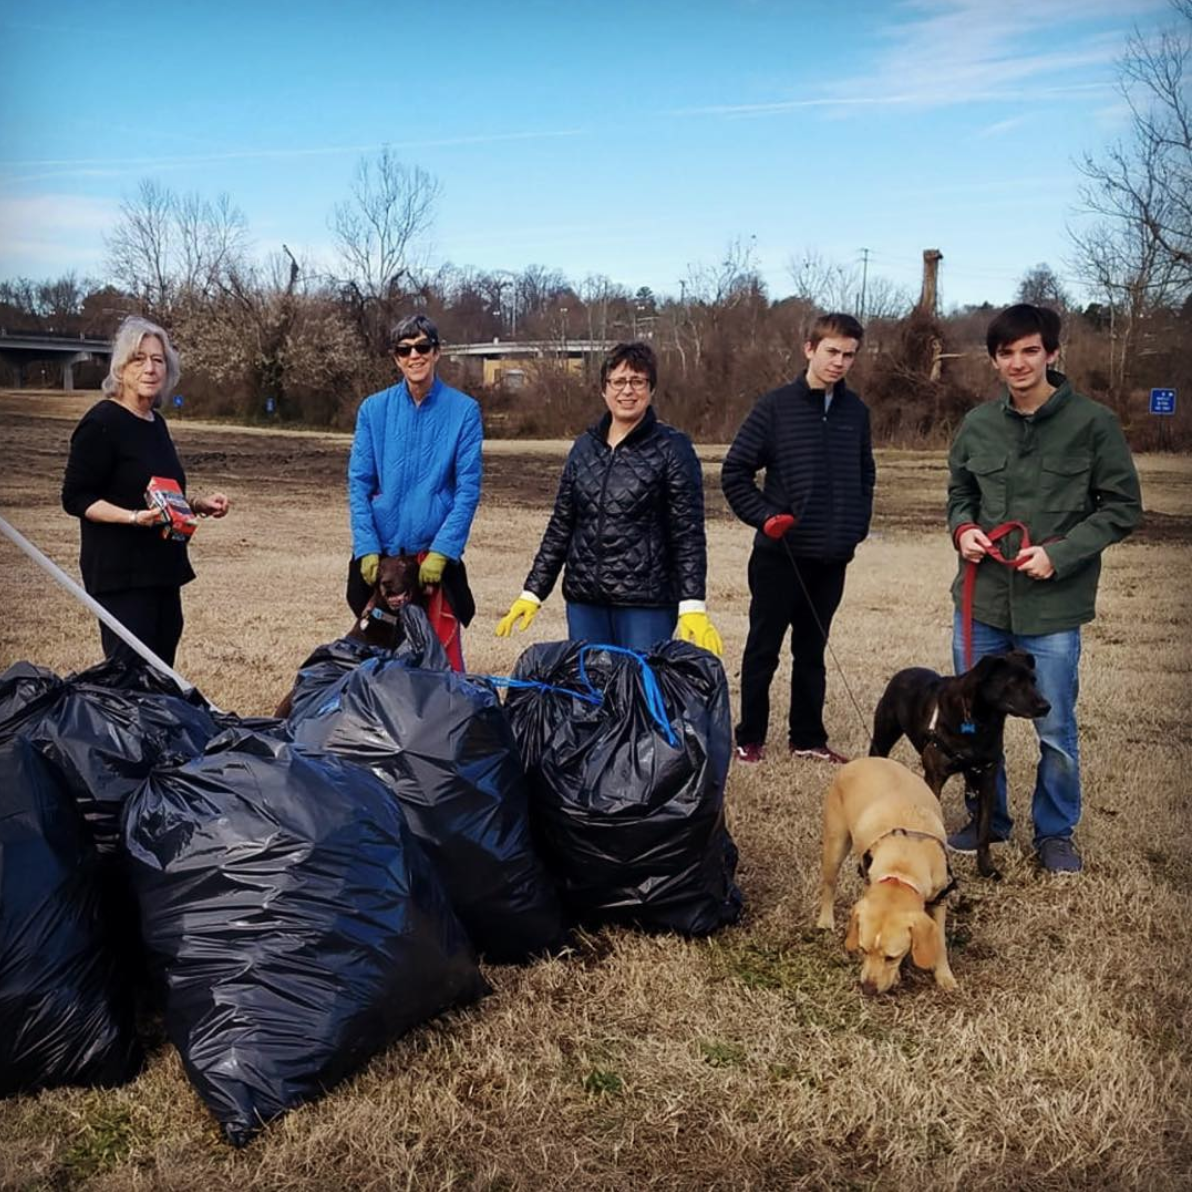 These pups are helping with the cleanup even though federal employees aren't able to make it to our national parks. (Image via @photobyfrommyporchtoperu)